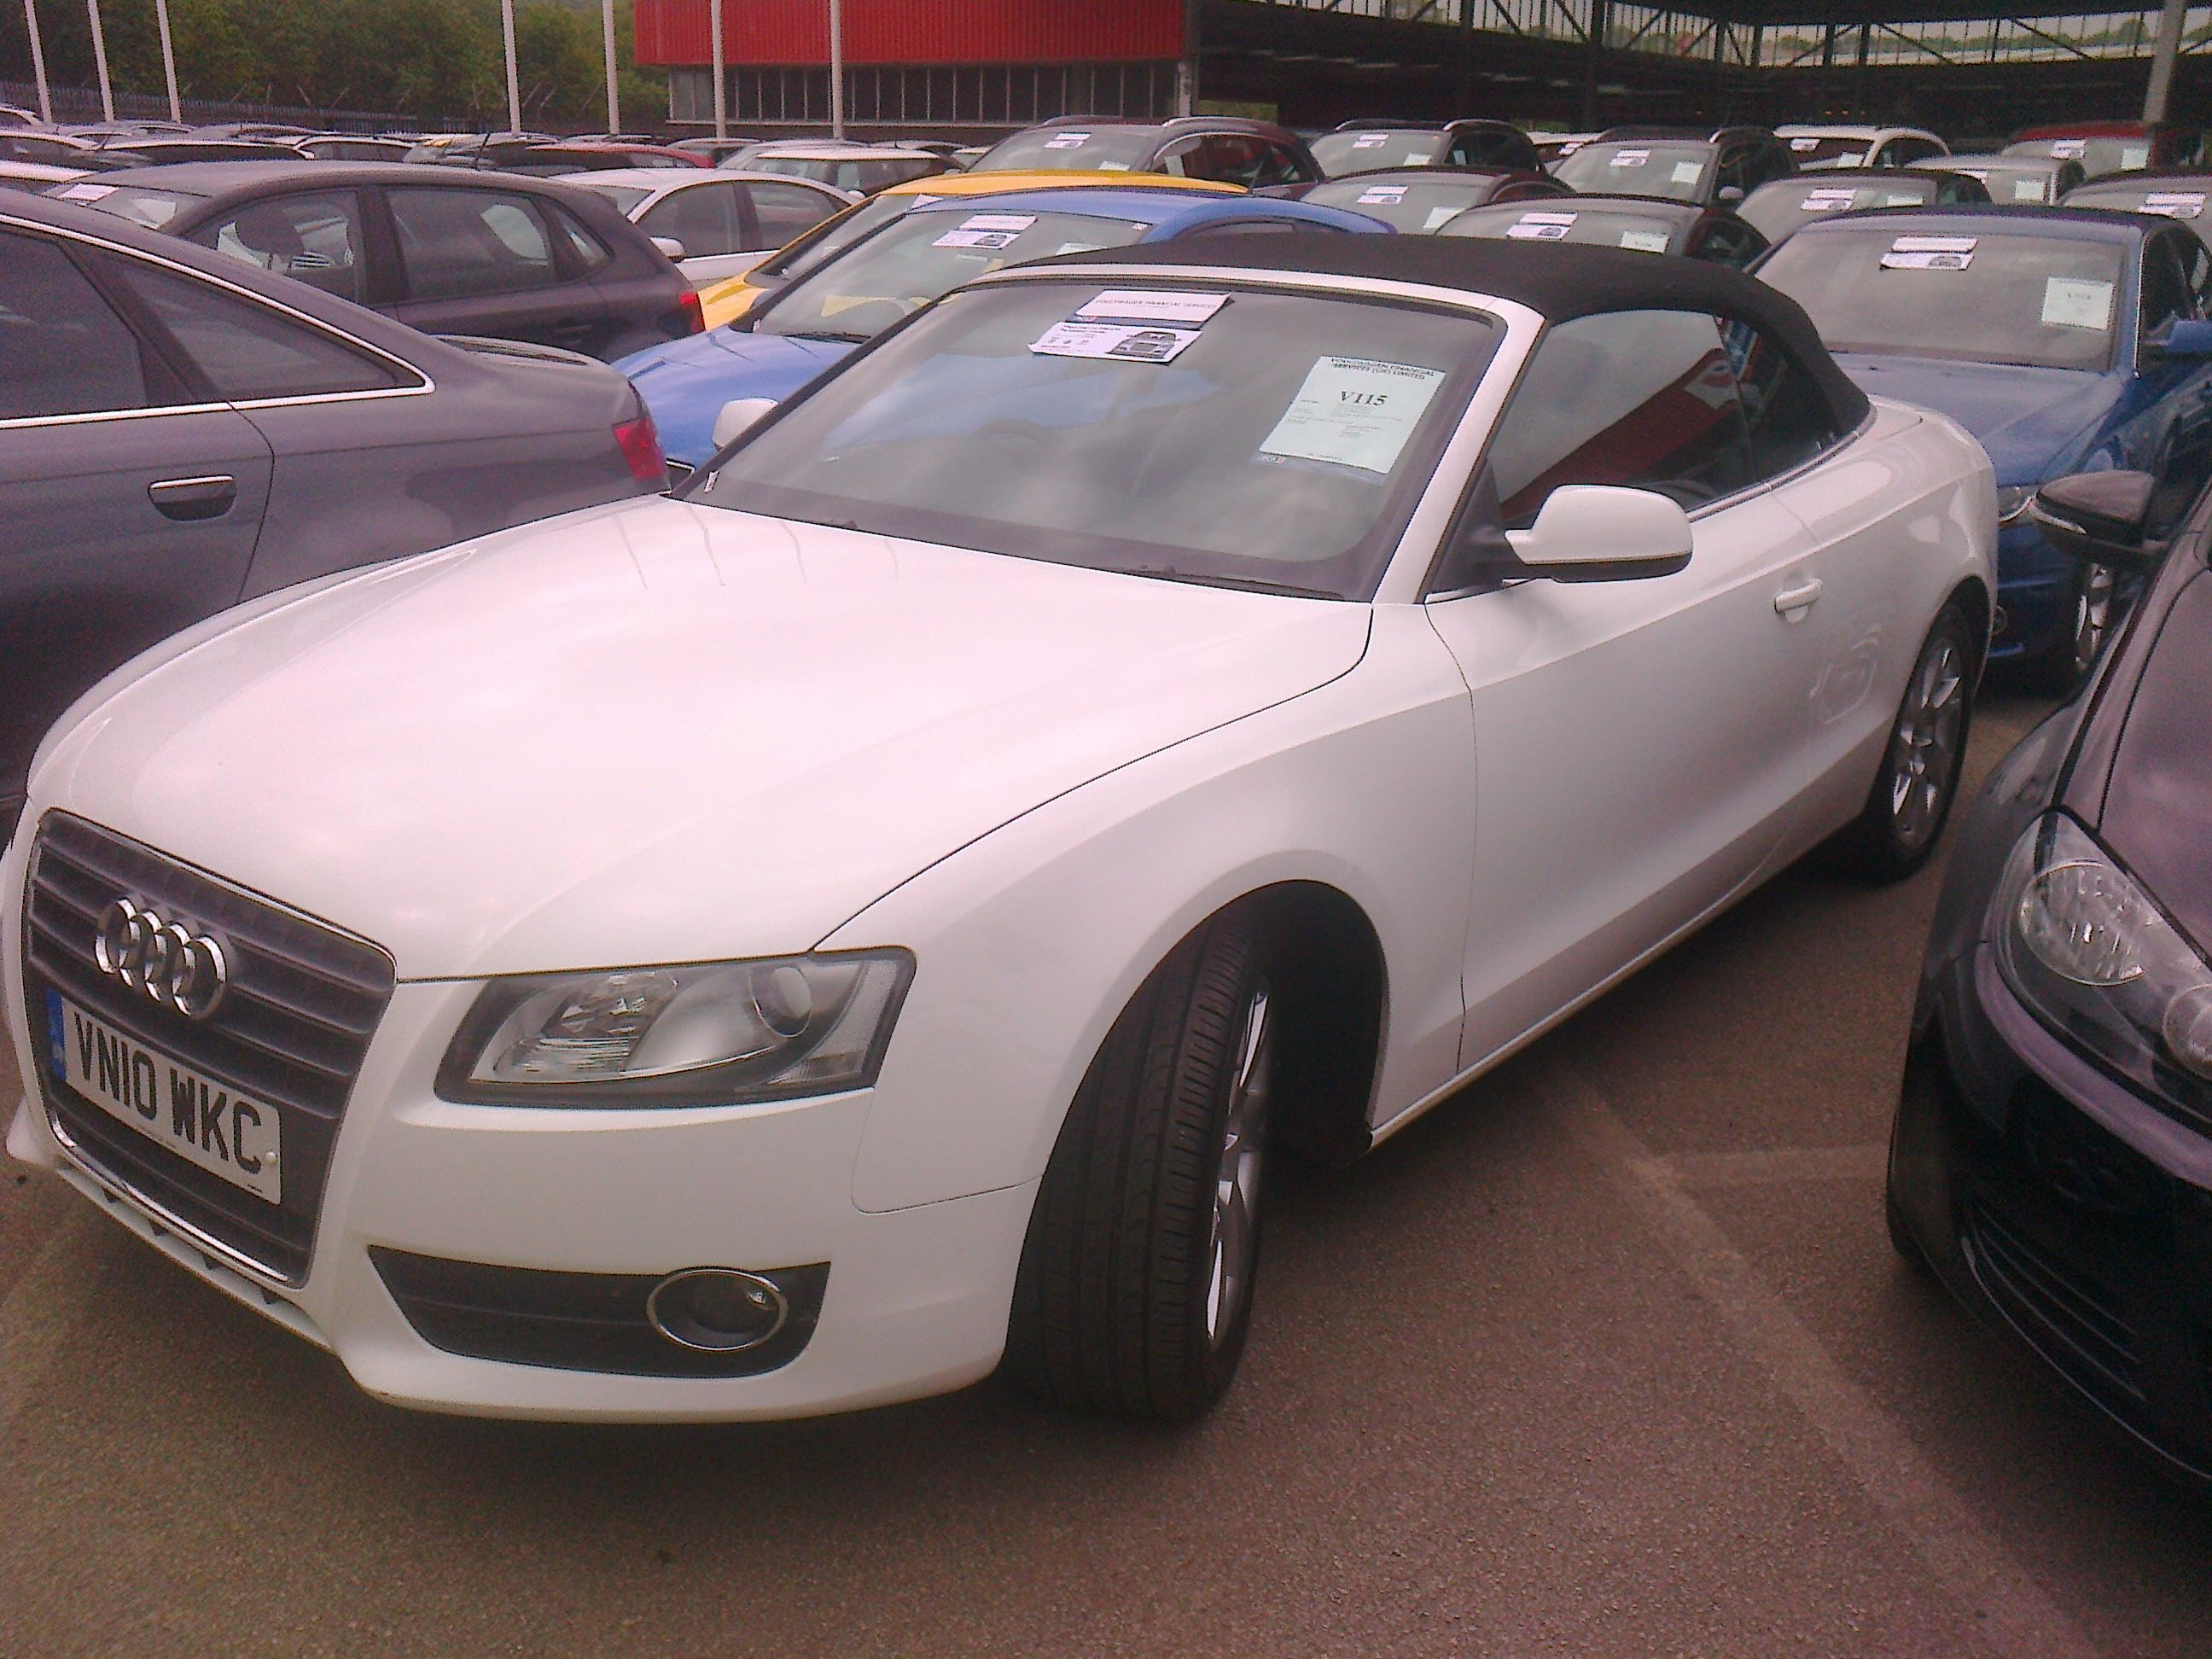 An Audi cabriolet Hand inspected and purchased for one of our